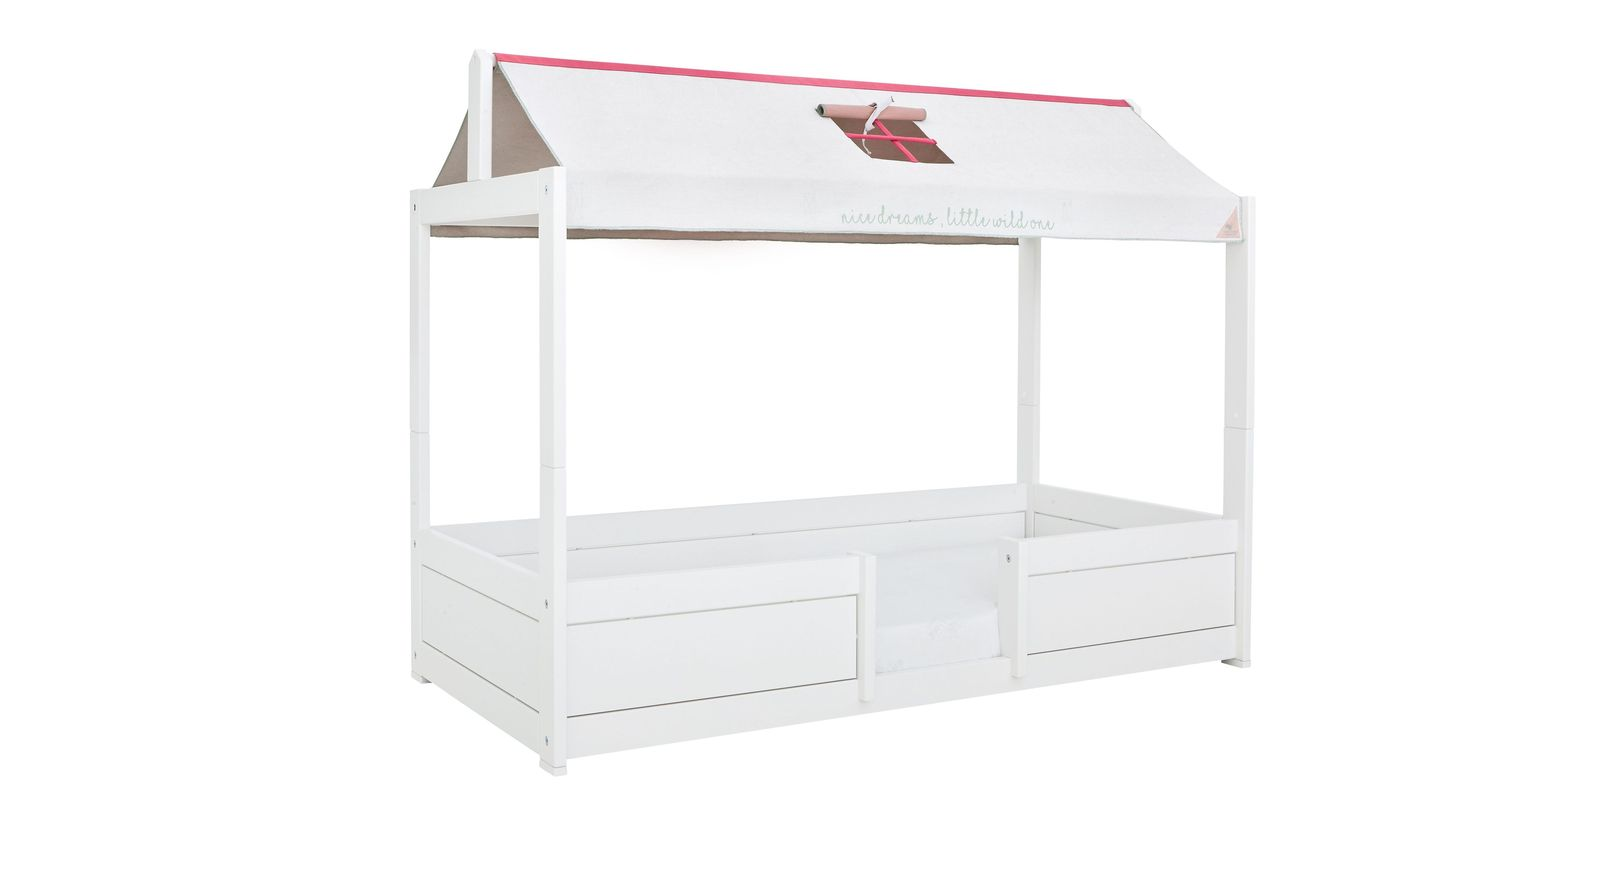 lifetime indianer-kinderbett 90x200 cm umbaubar - 4-in-1 sioux